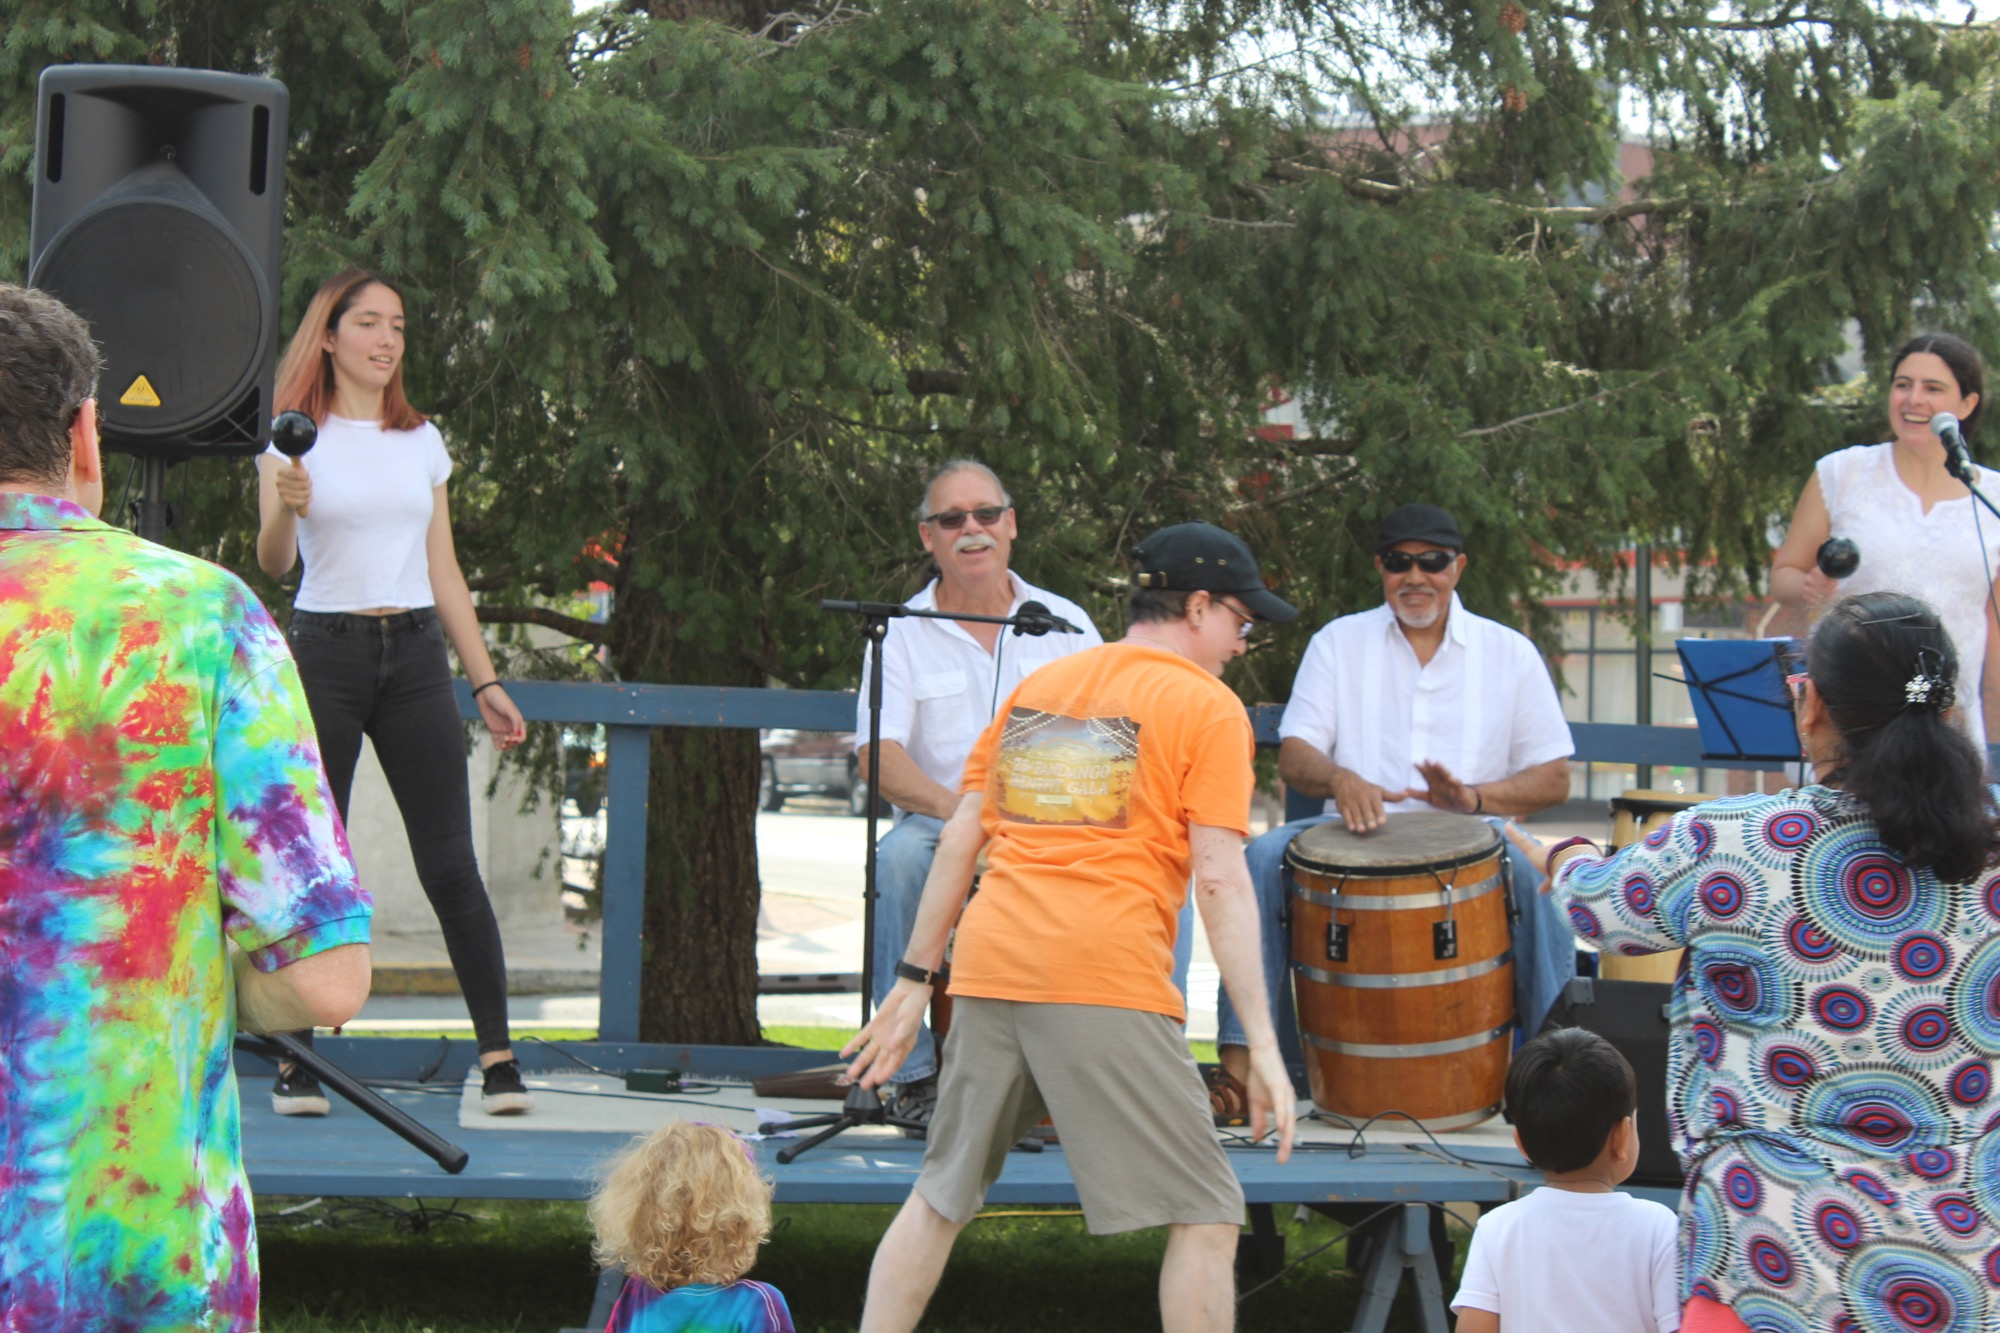 When people get together to dance, drum and sing bomba it is called a bombazo. The audience at the Farmer's market festival joined in the dancing and singing, turning the Raíces Student Ensemble performance into an impromptu bombazo.